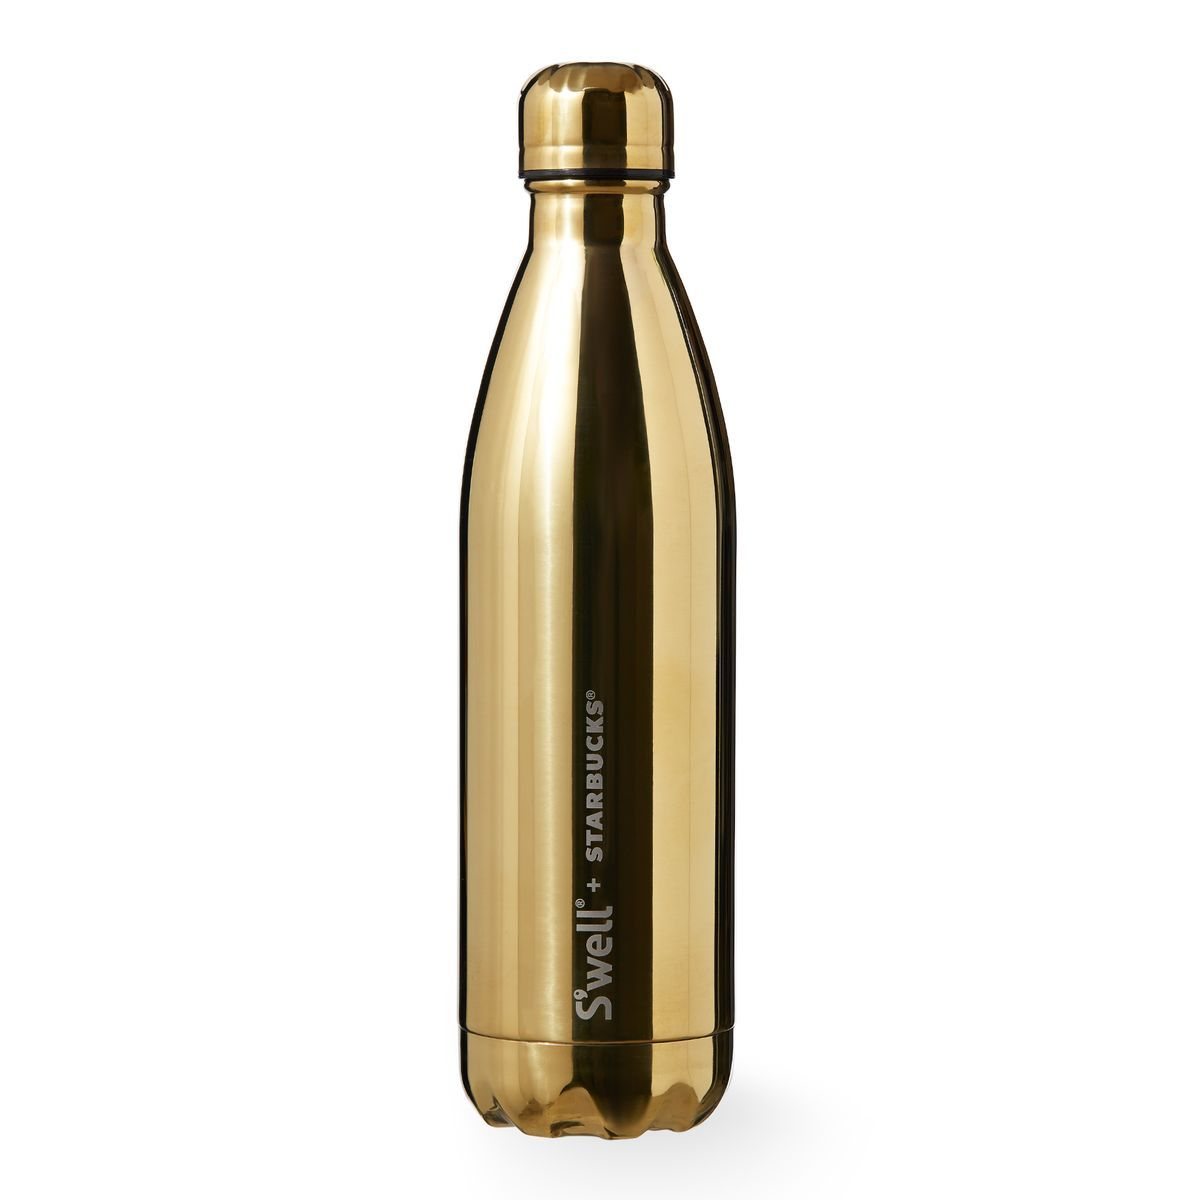 A Stainless Steel Water Bottle From S Well Sup Reg And Starbucks With Shiny Gold Translucent Finish Part Of The Brilliant Collection